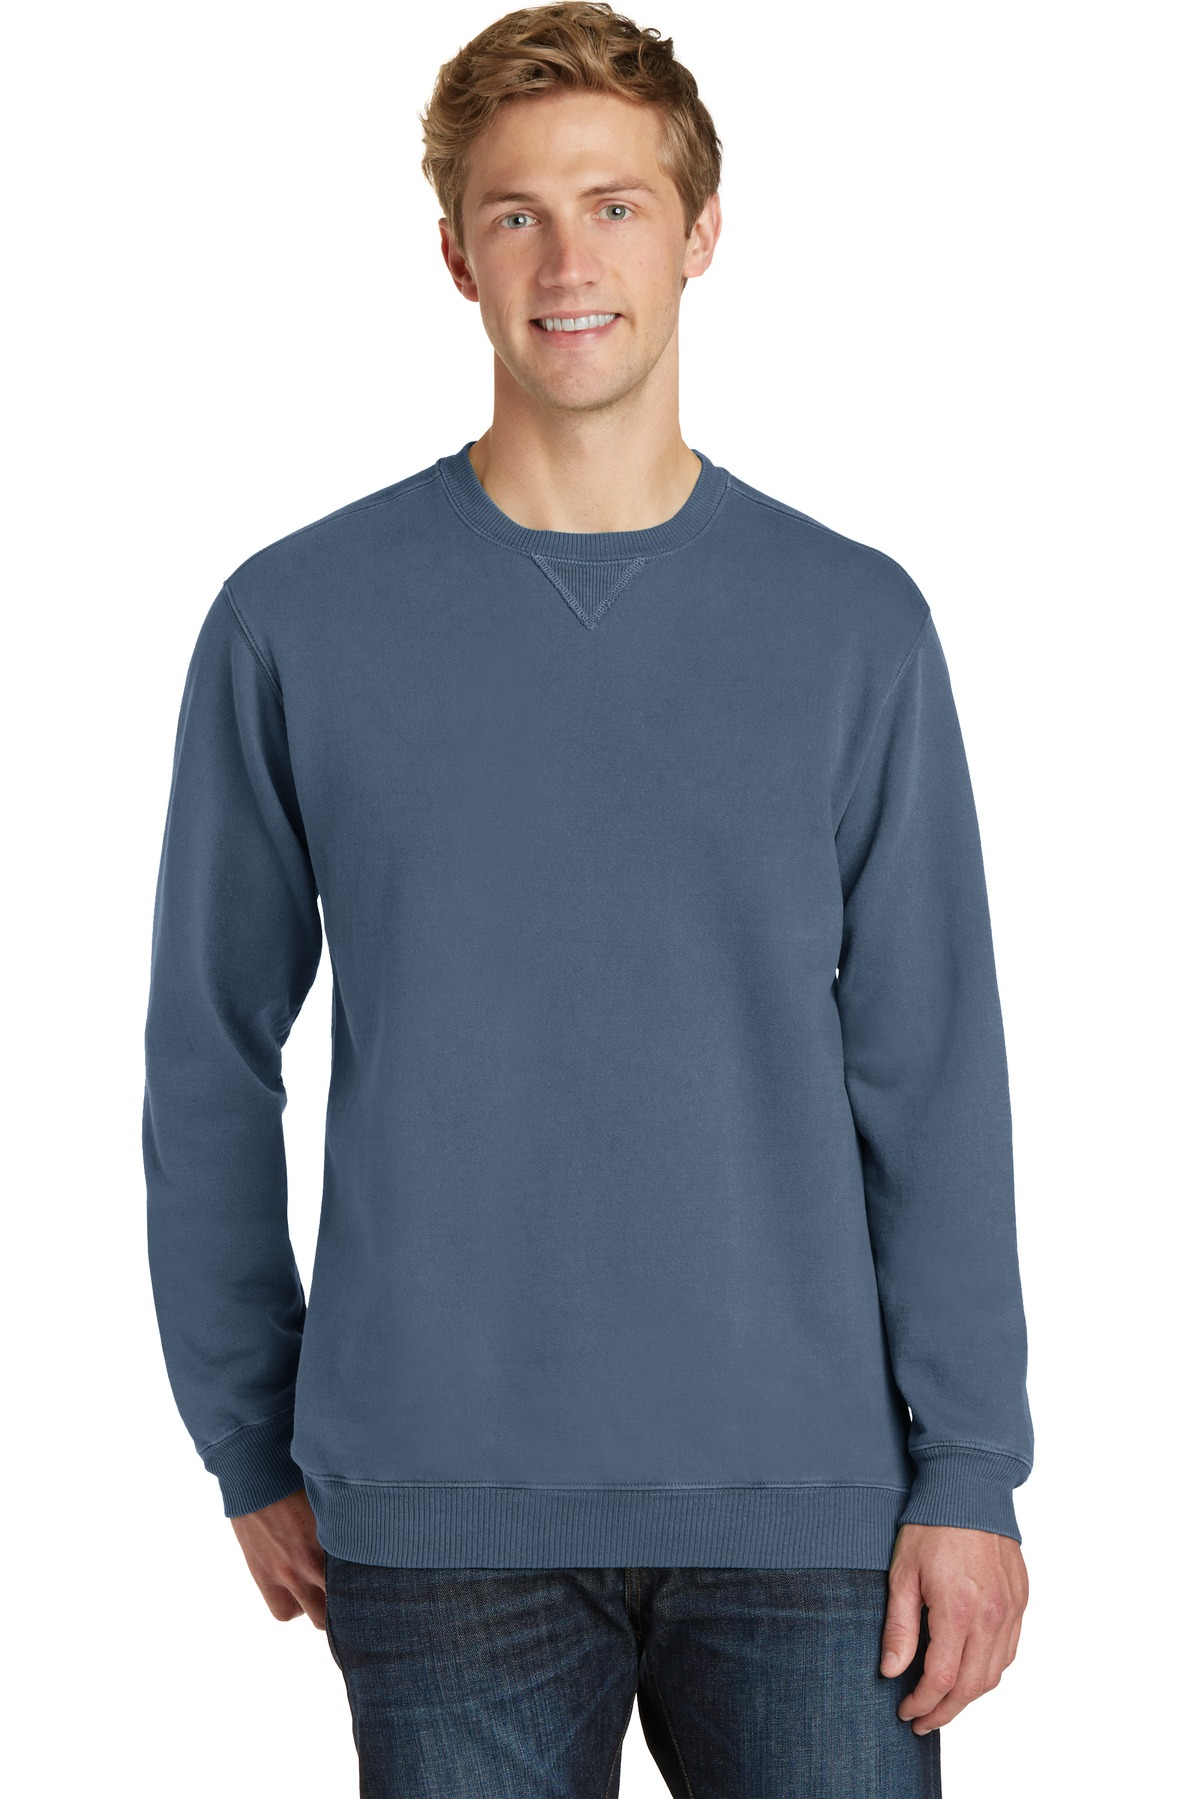 Port & Company ®  Beach Wash ™  Garment-Dyed Sweatshirt PC098 - Denim Blue